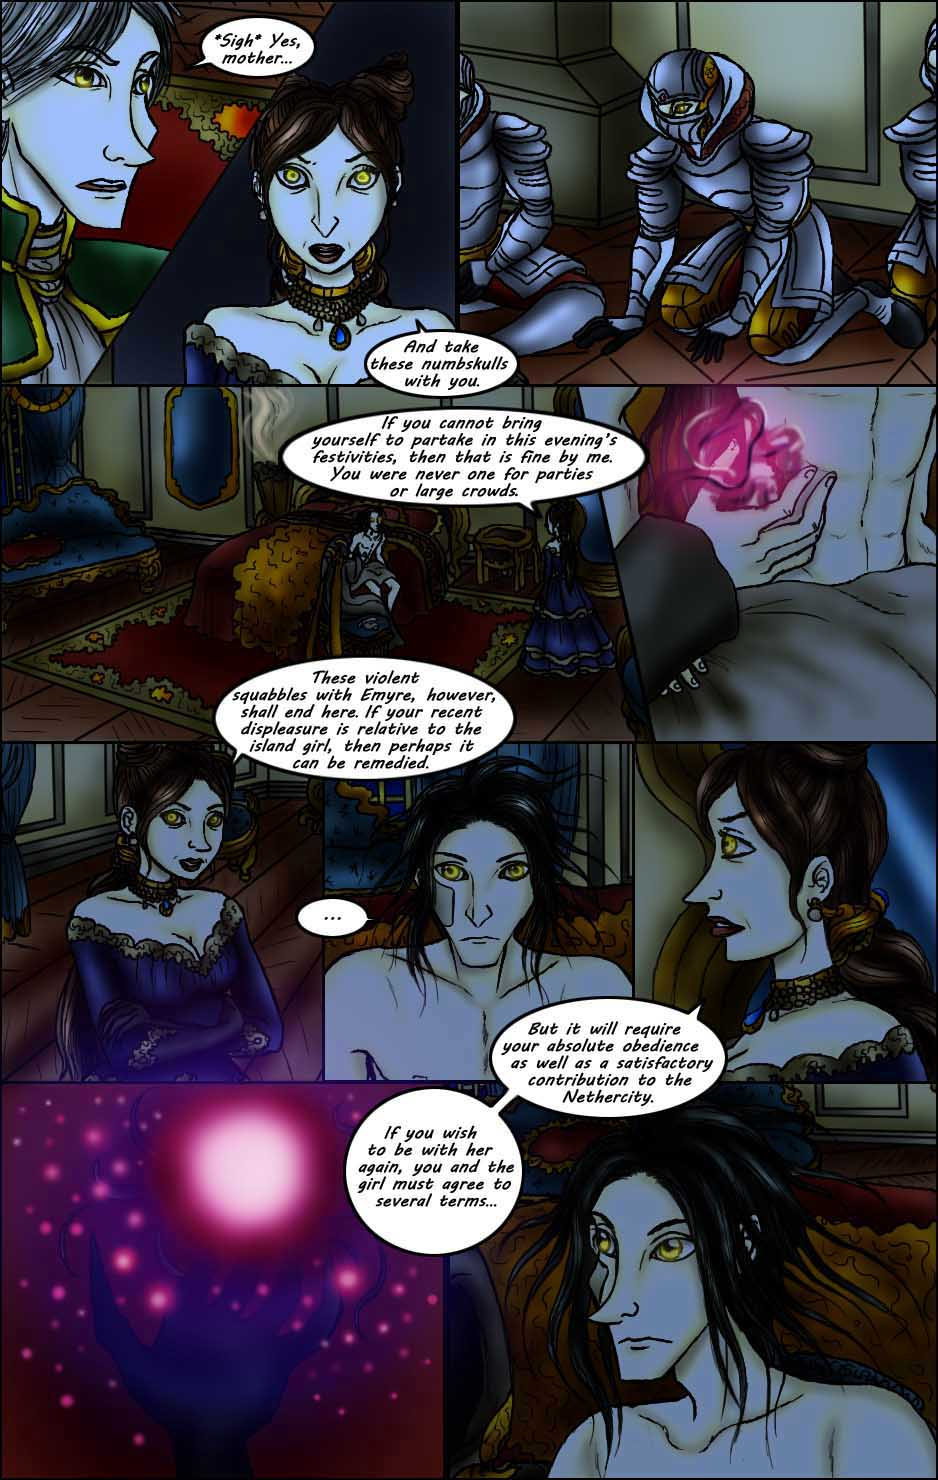 Page 323 – The Negotiation Part 2